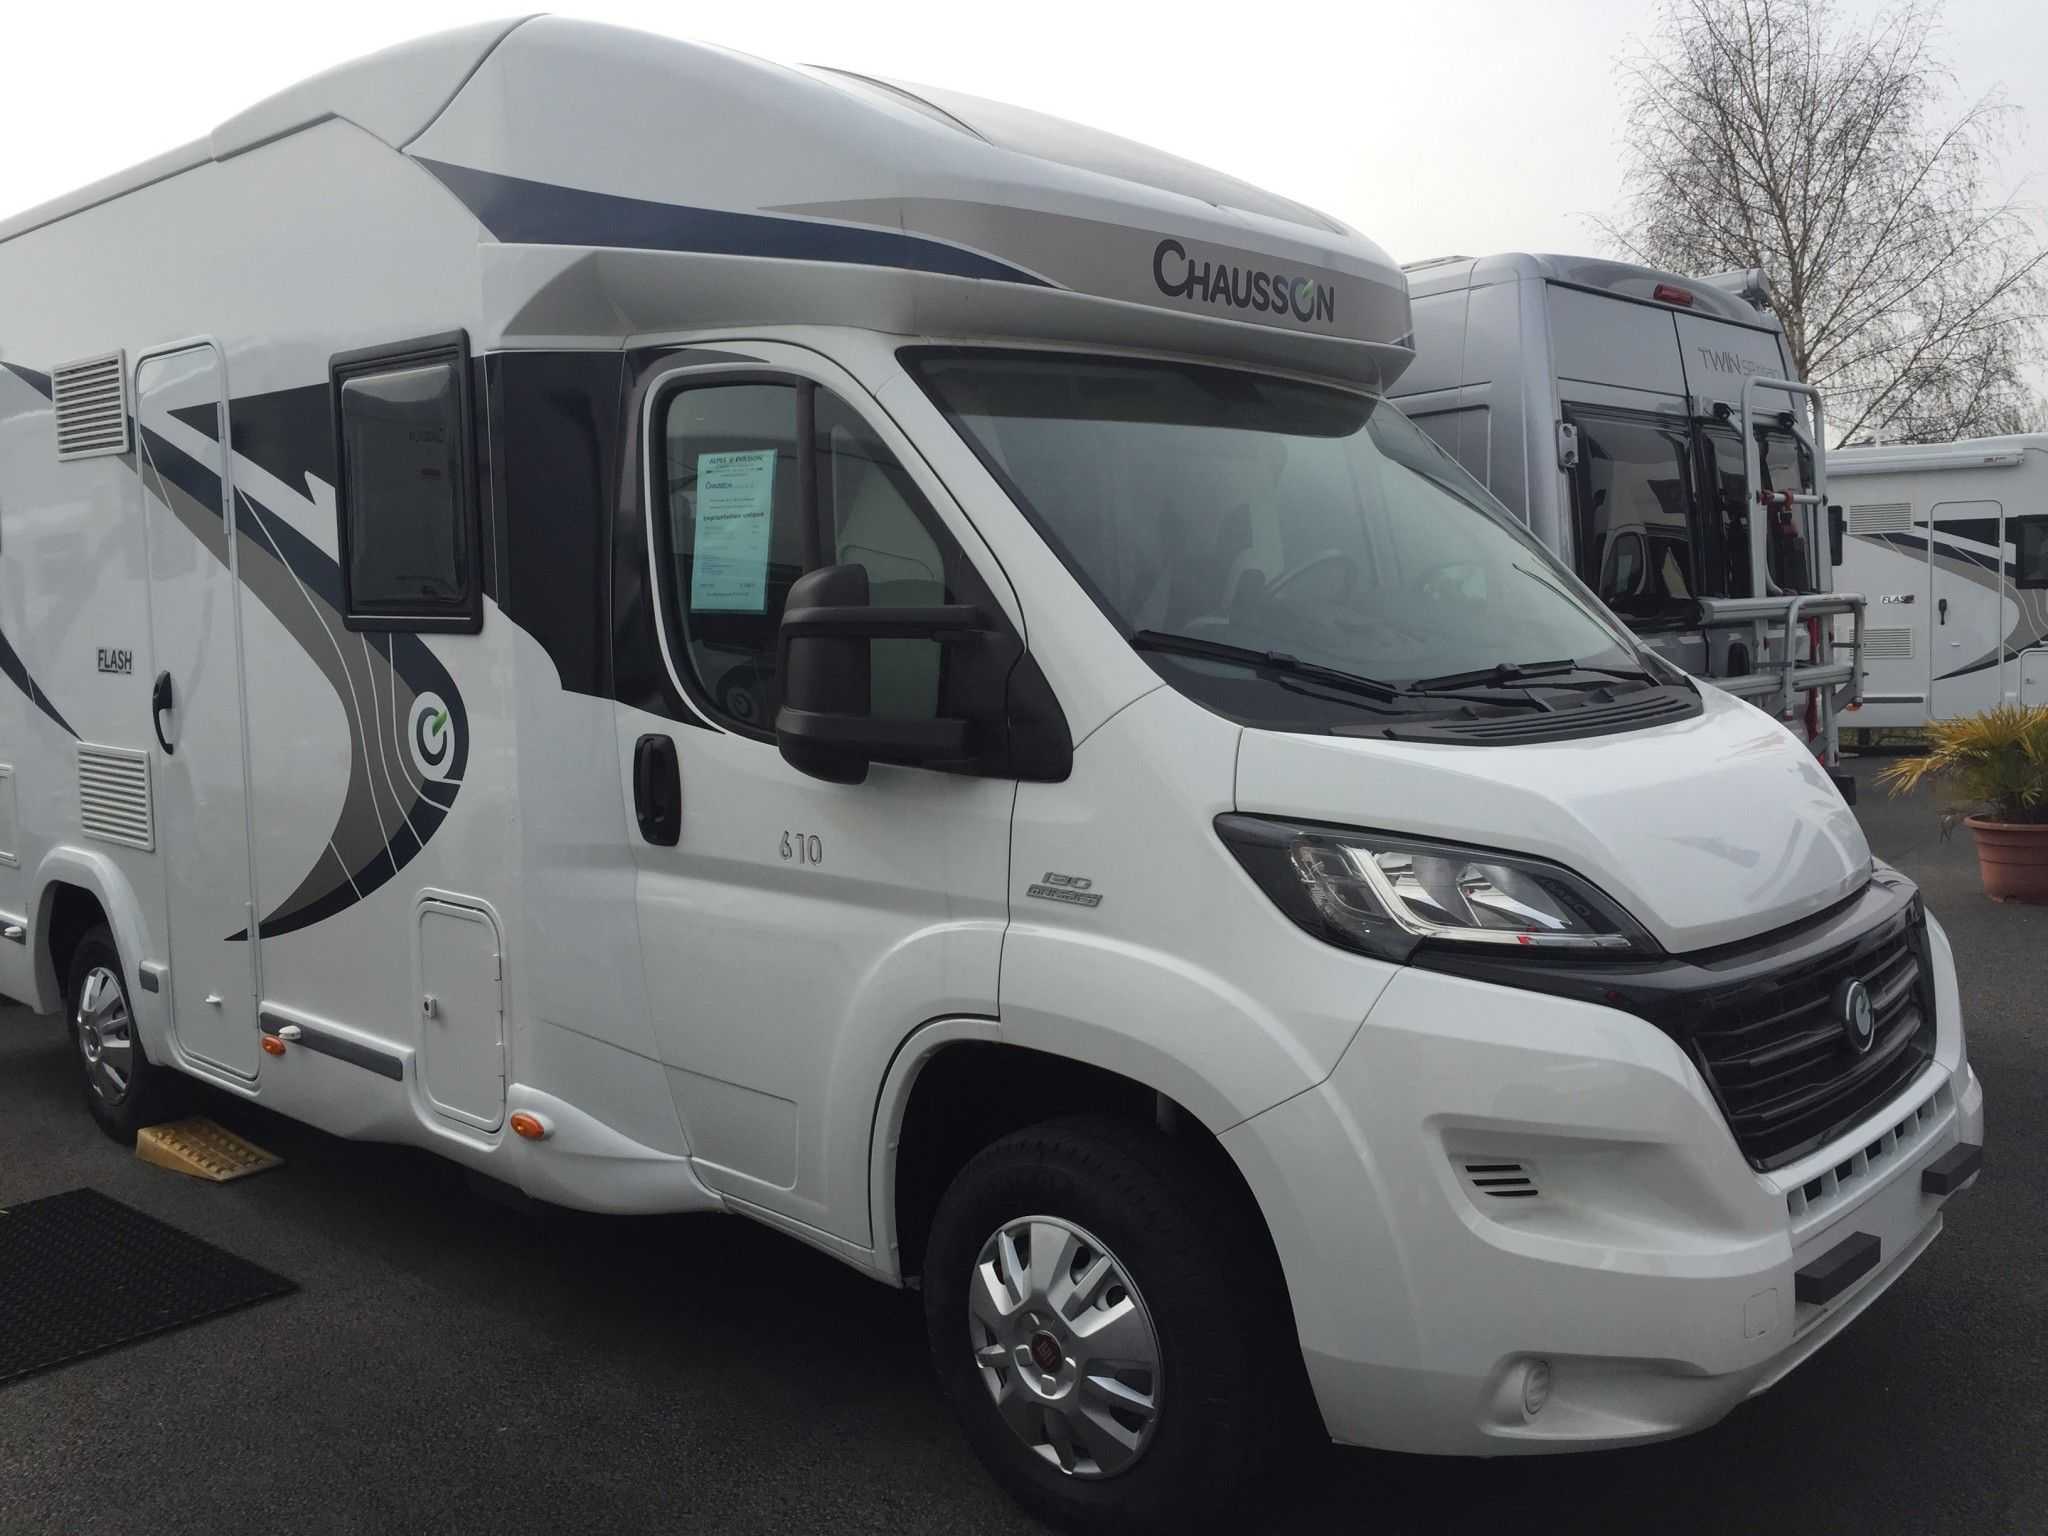 Camping-car CHAUSSON FLASH 610